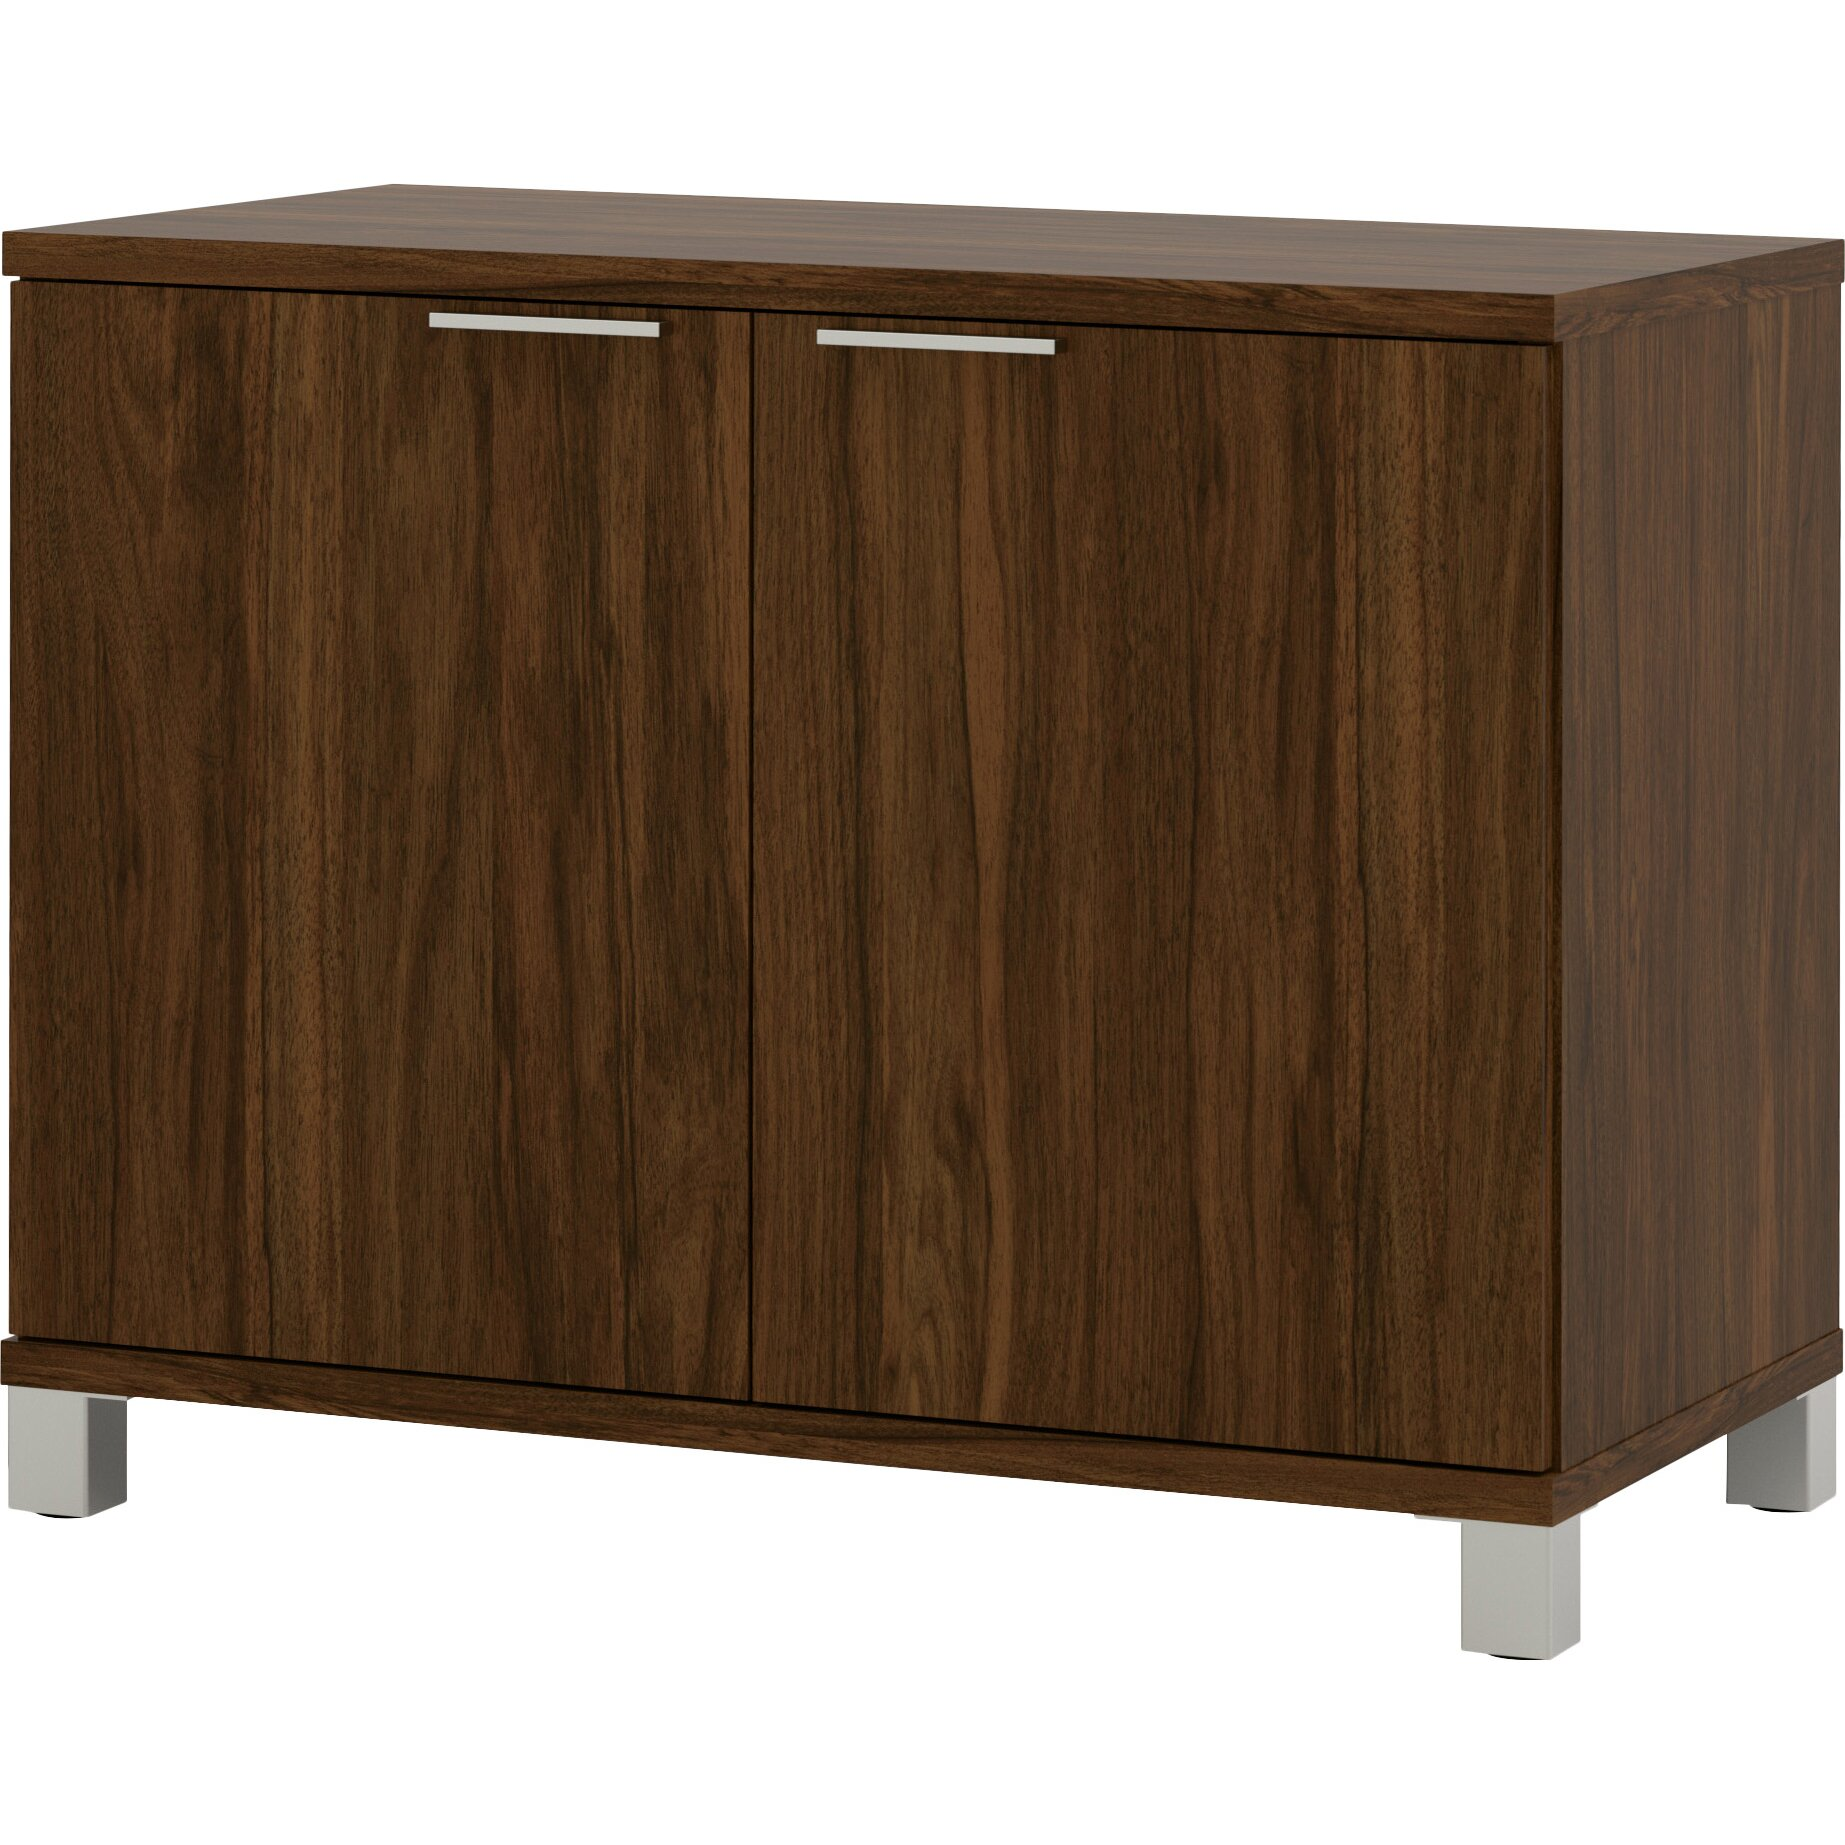 Wooden Storage Cabinets With Doors Mercury Row Ariana 2 Door Storage Cabinet Reviews Wayfair